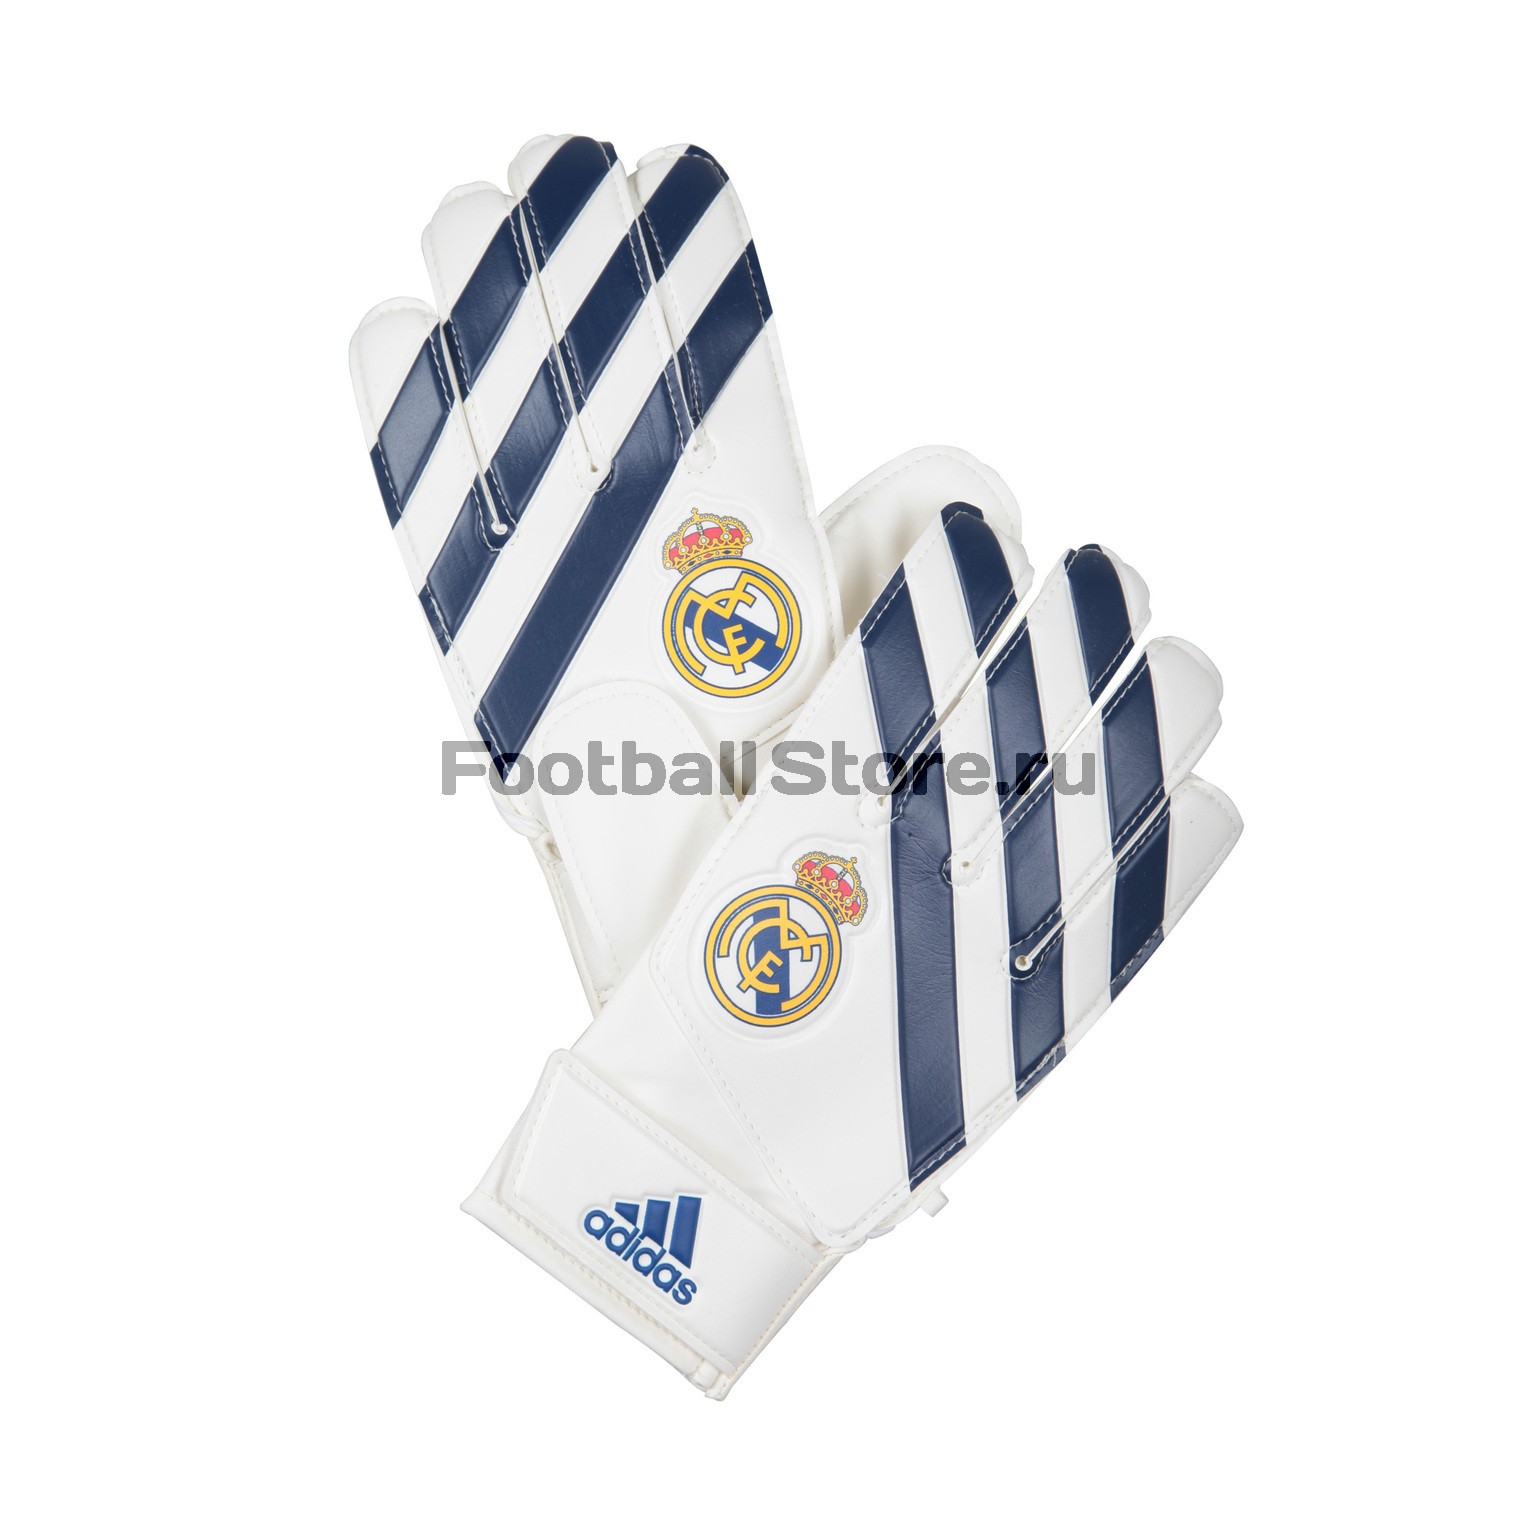 Перчатки Adidas Перчатки Adidas Real Madrid Lite AP7017 real madrid adidas свитер adidas real madrid euhybrid top bq7851